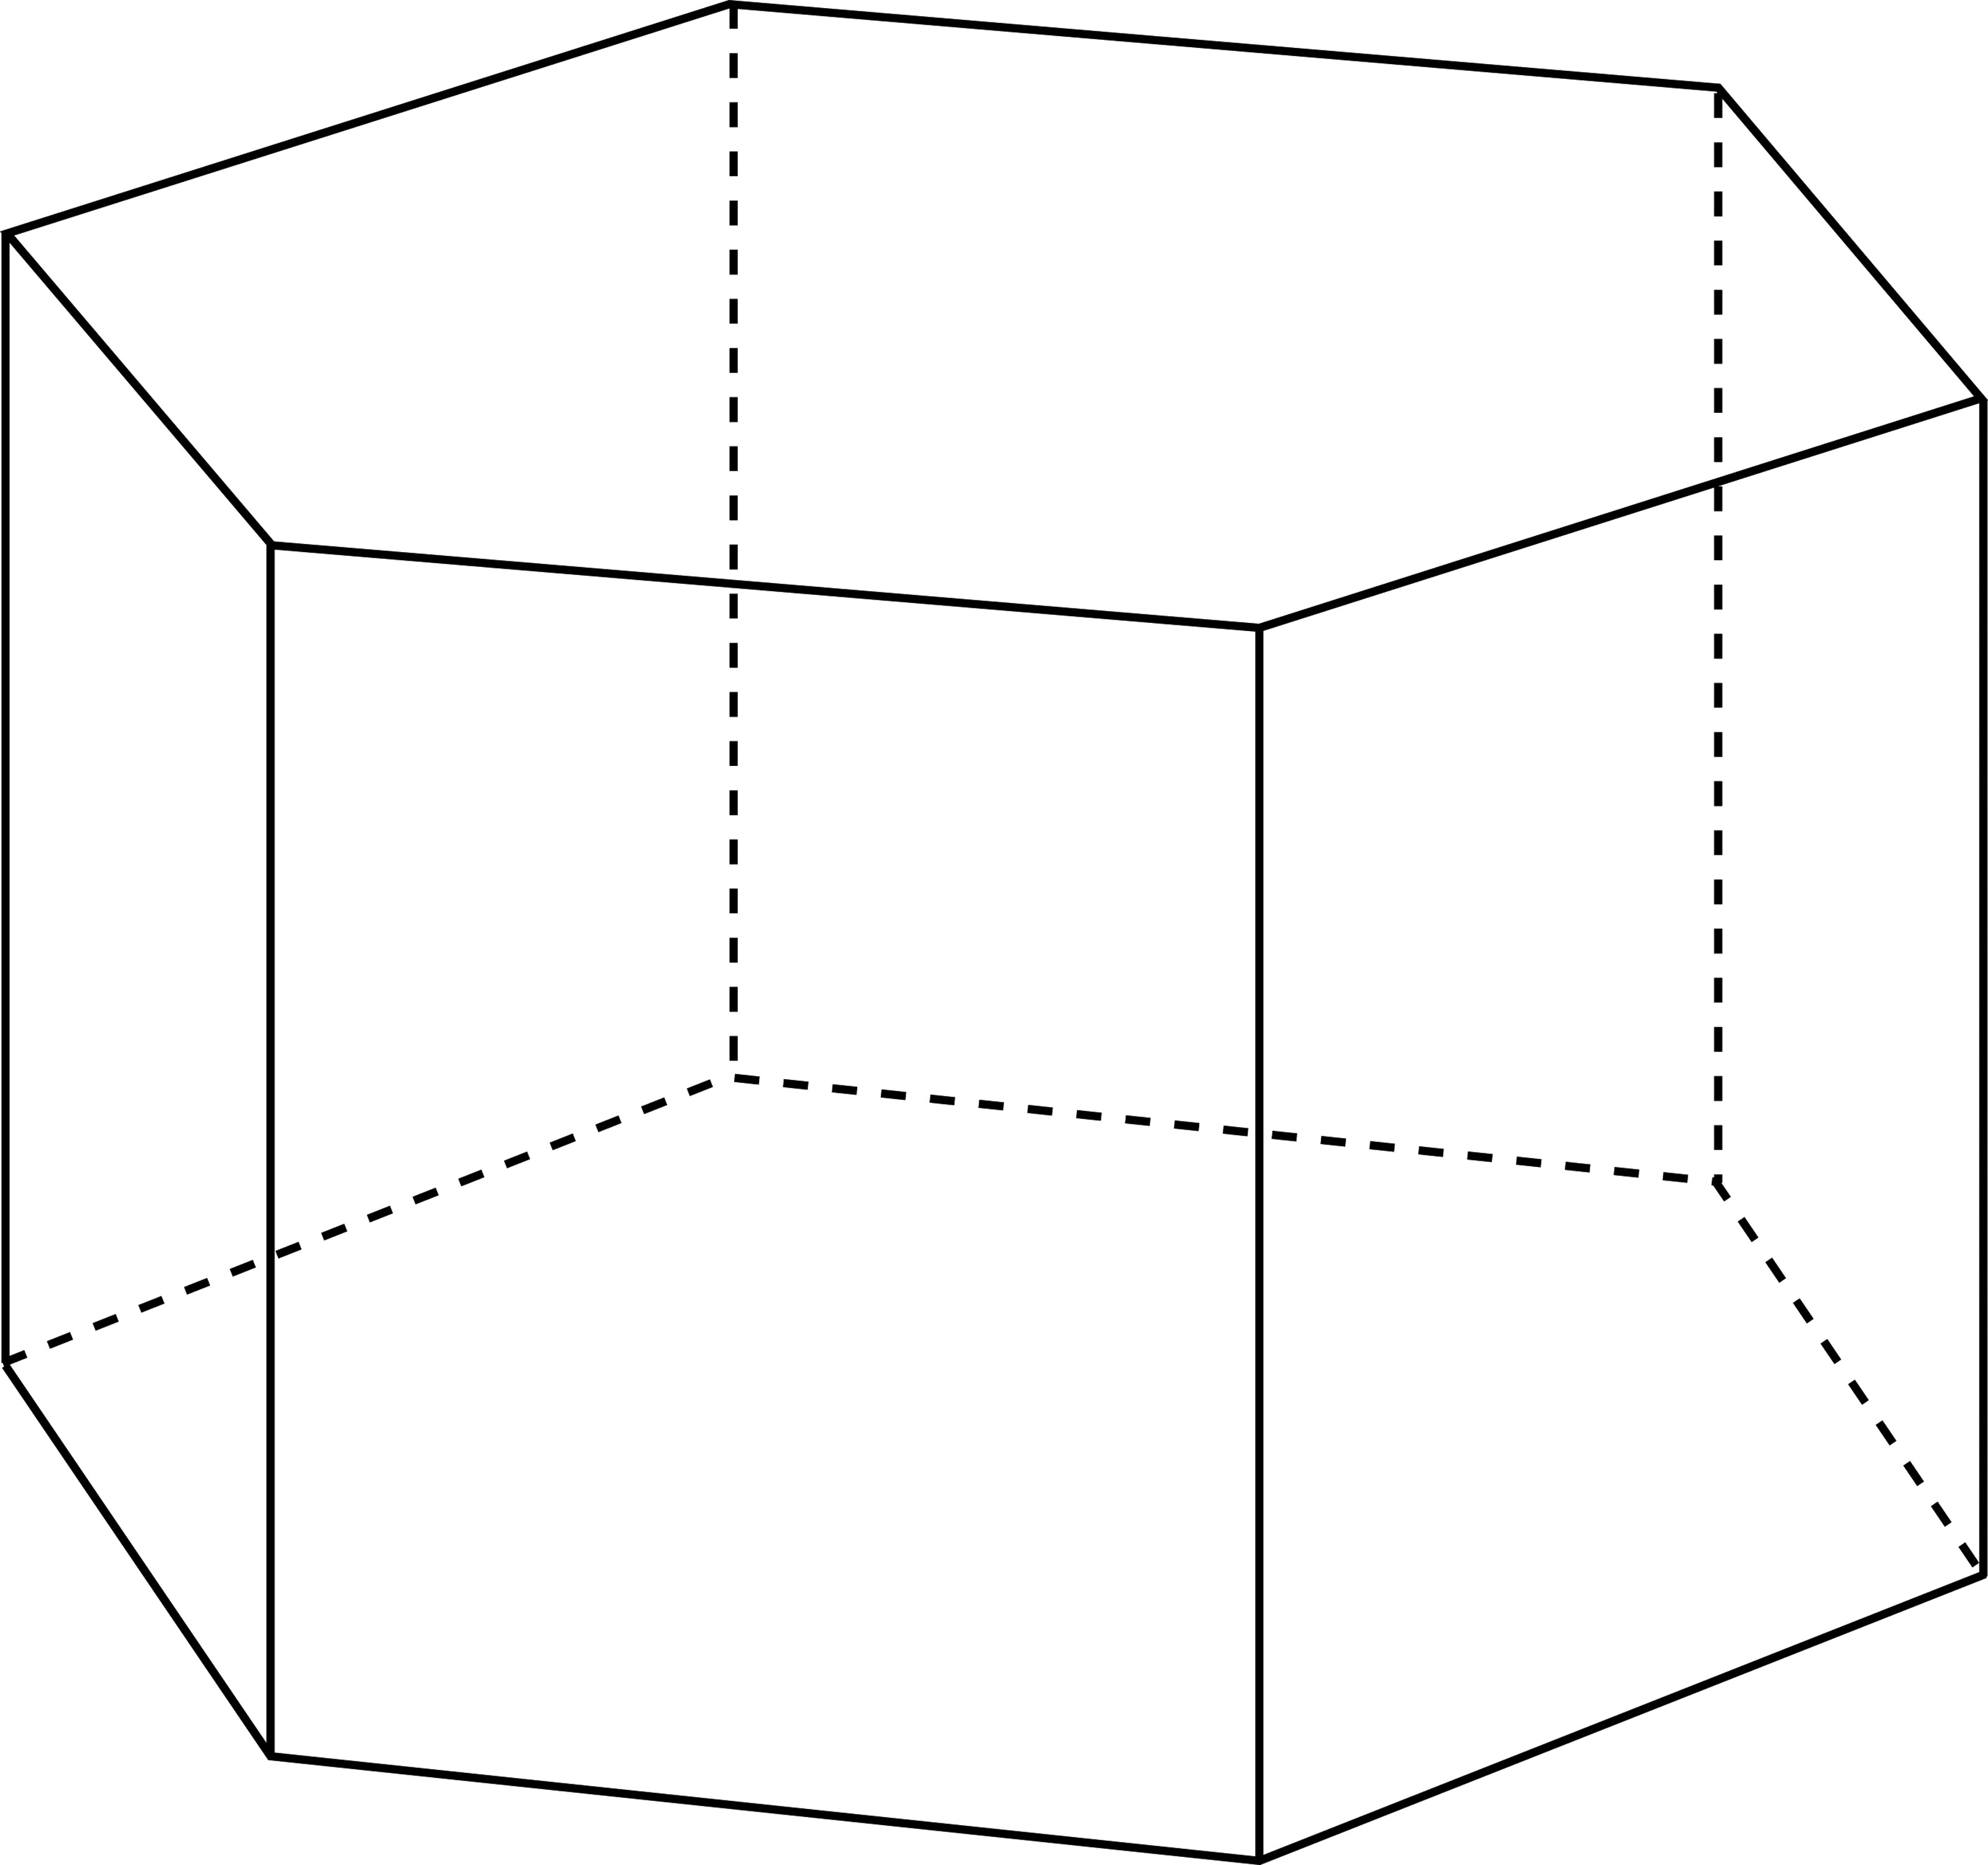 net diagrams of 3d shapes switch diagram wiring hexagonal prism clipart etc